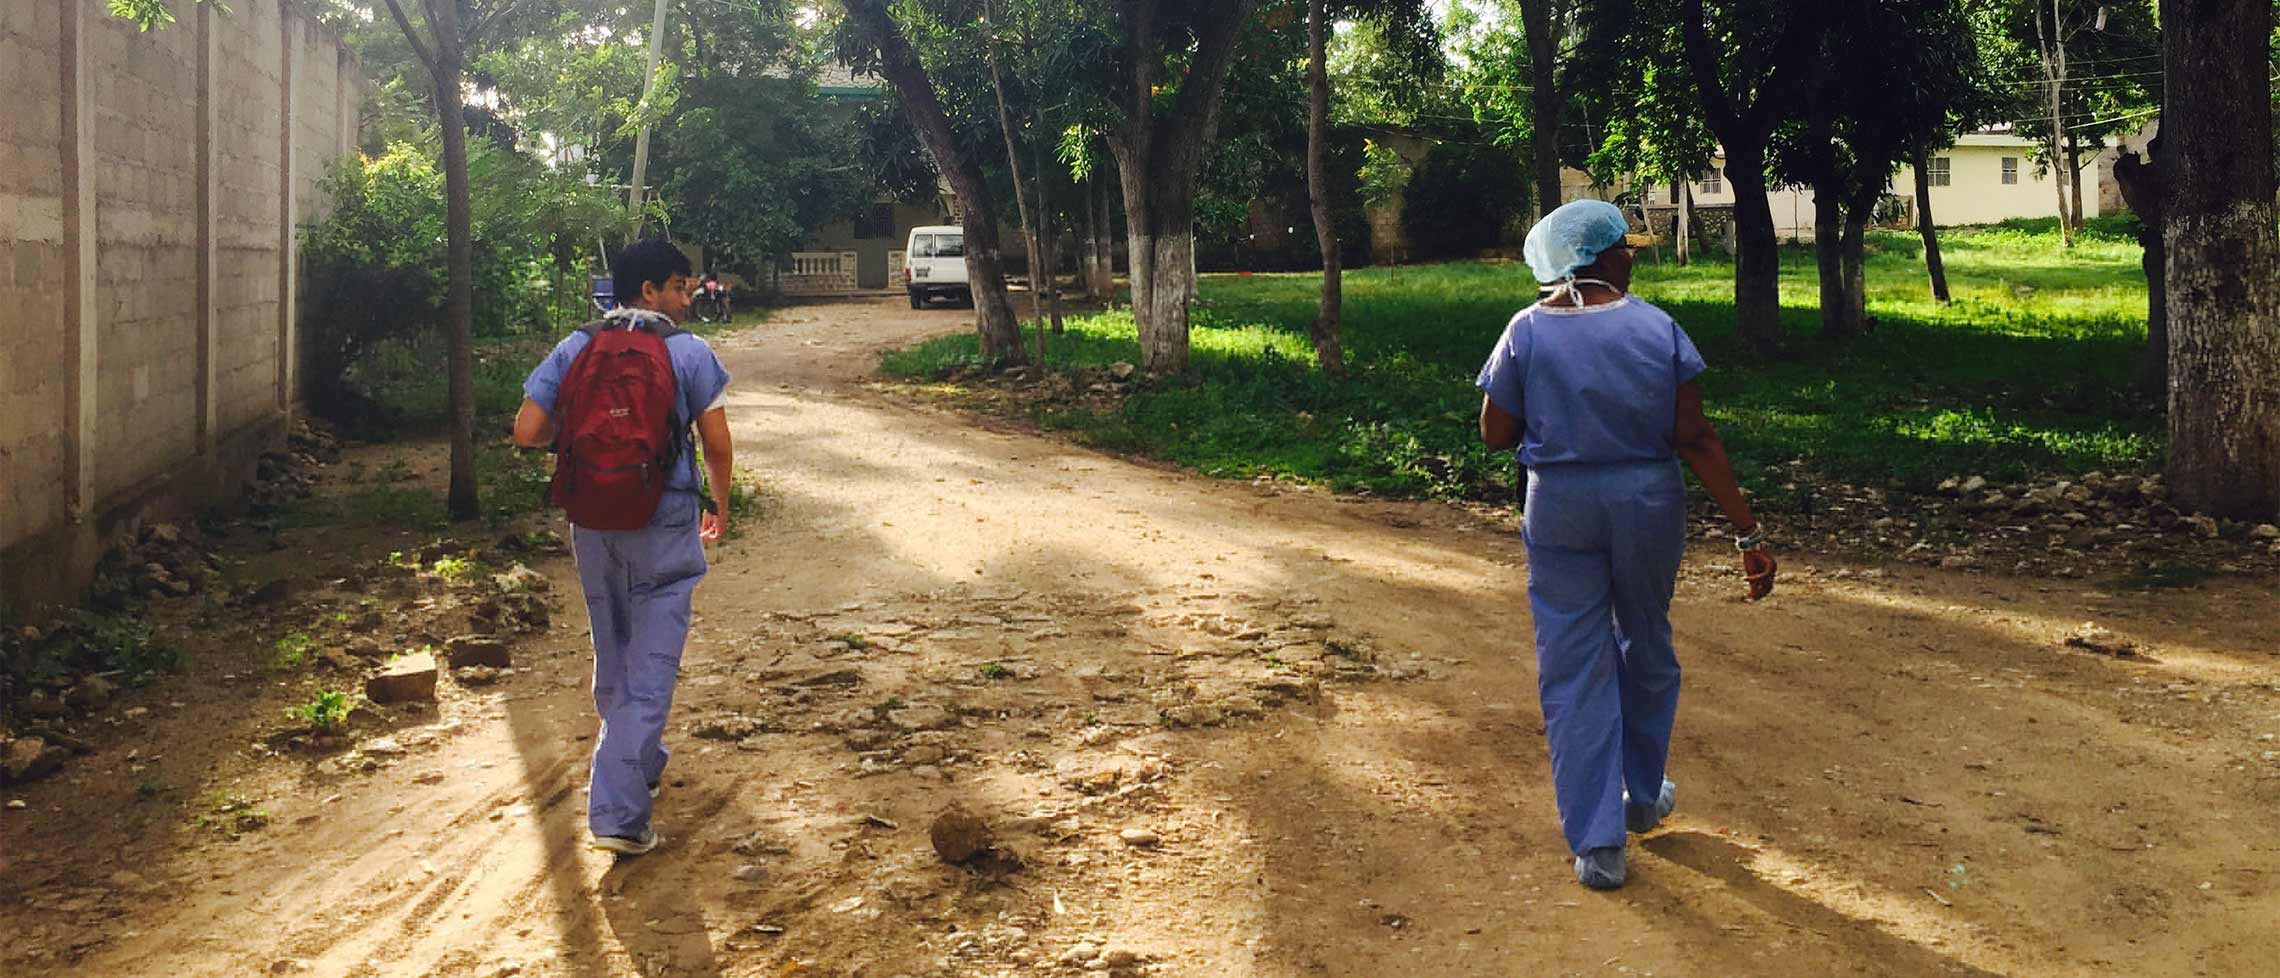 An Emory medical student and nurse walk home from the hospital. Elizabeth Carter, SOM. Haiti.